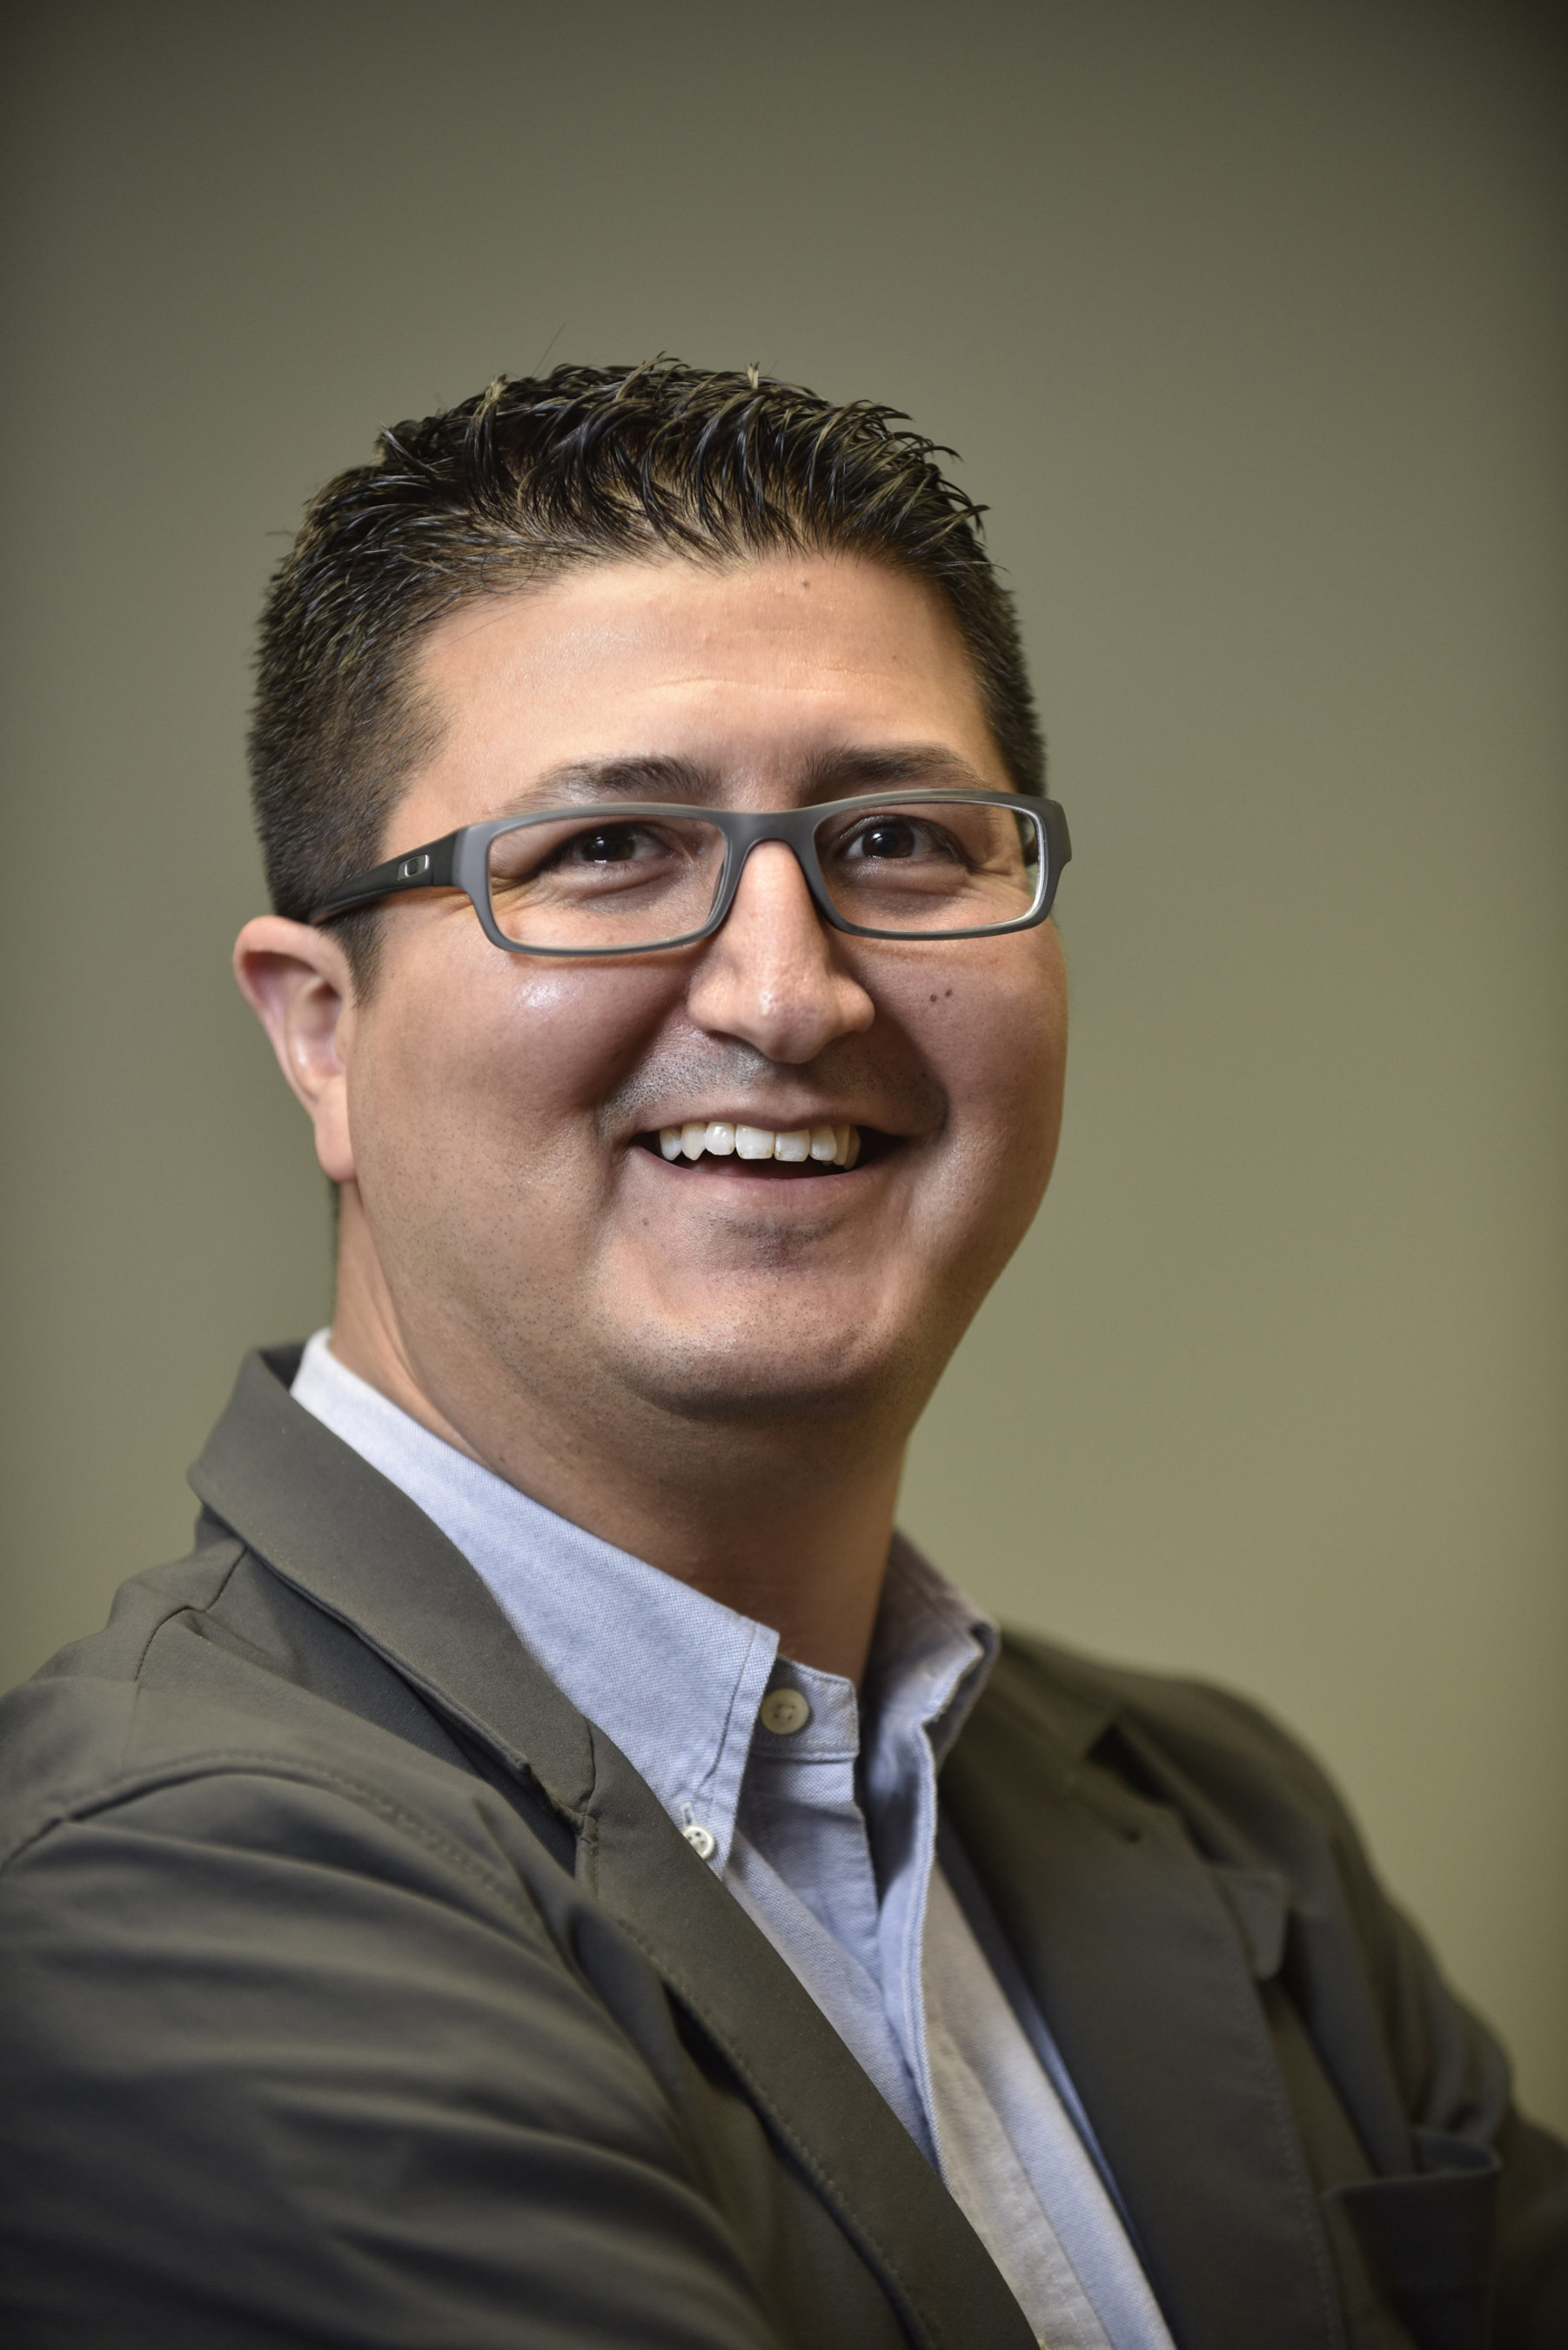 Felipe Rael, executive director of the Greater Albuquerque Housing Partnership, has been appointed to the Affordable Housing Advisory Council at the Federal Home Loan Bank of Dallas. His three-year term began January 1. He also serves on the City of Albuquerque Affordable Housing Committee.